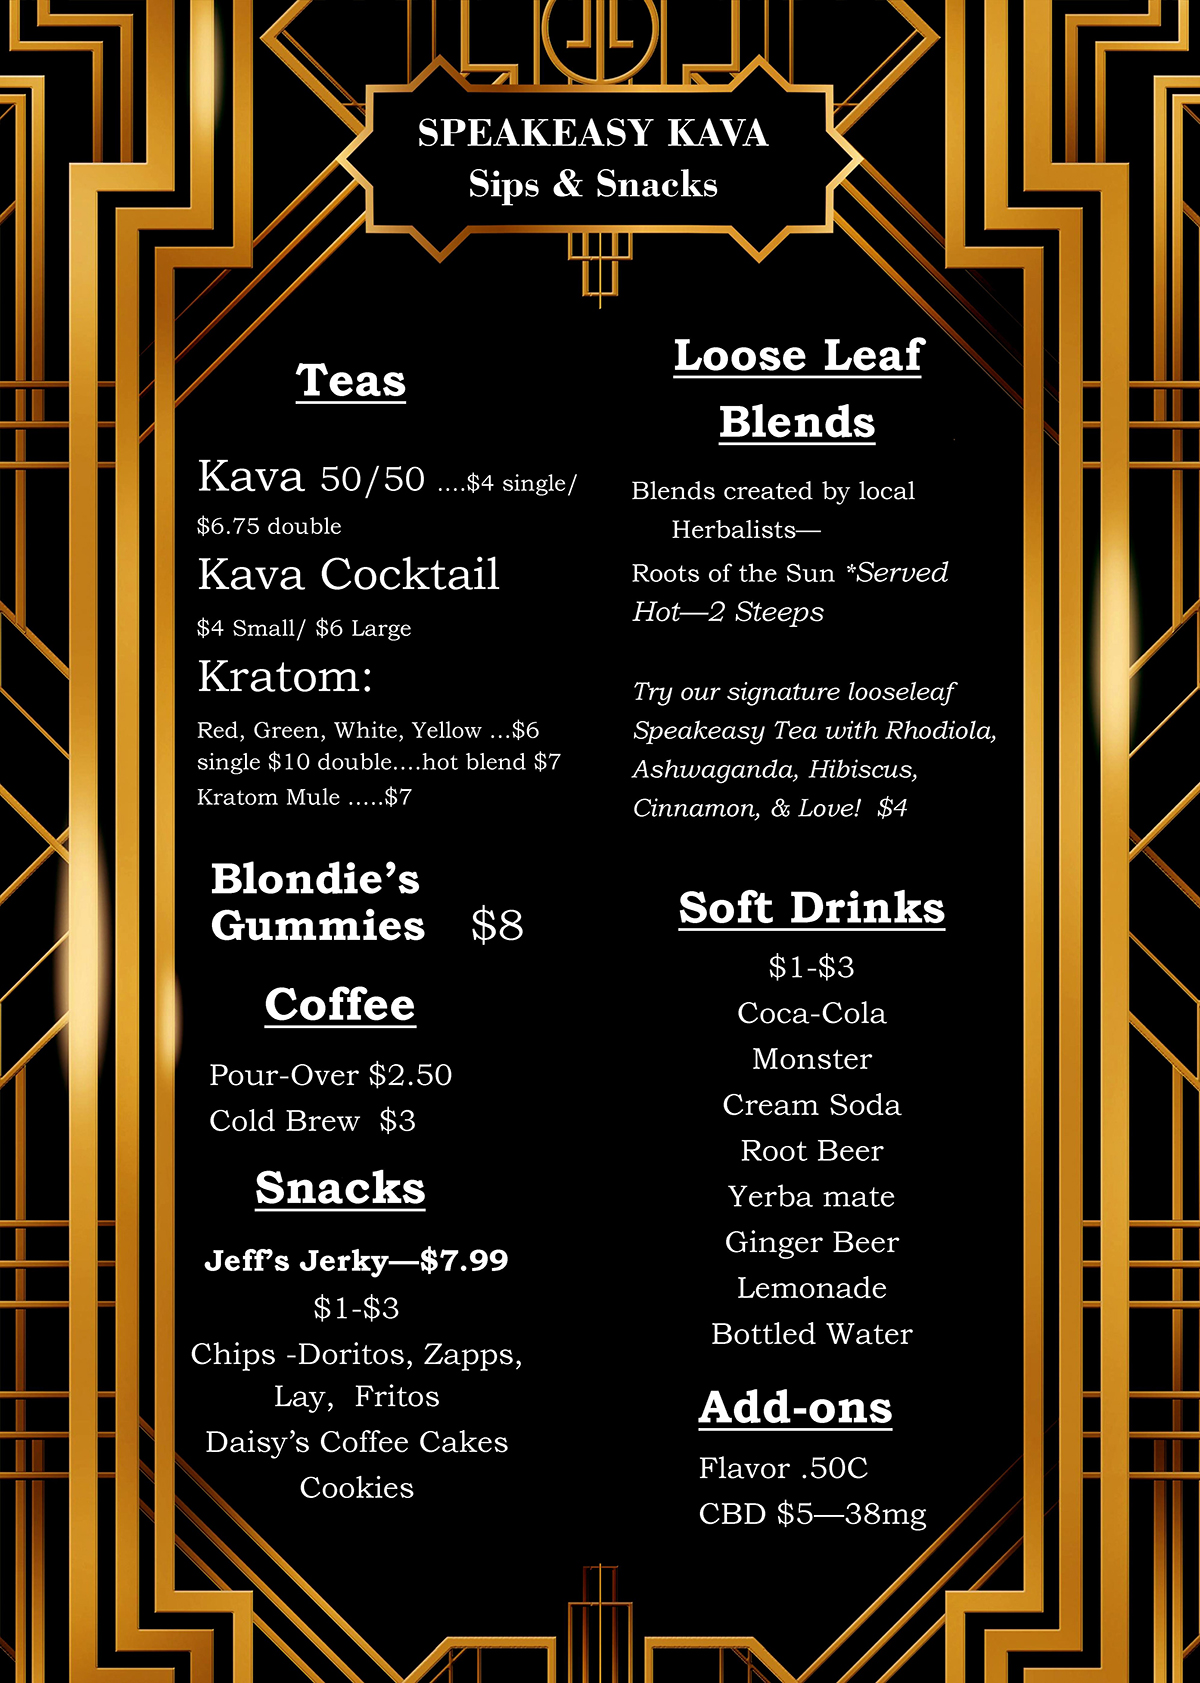 speakeasy kava tea bar menu 7-24-18